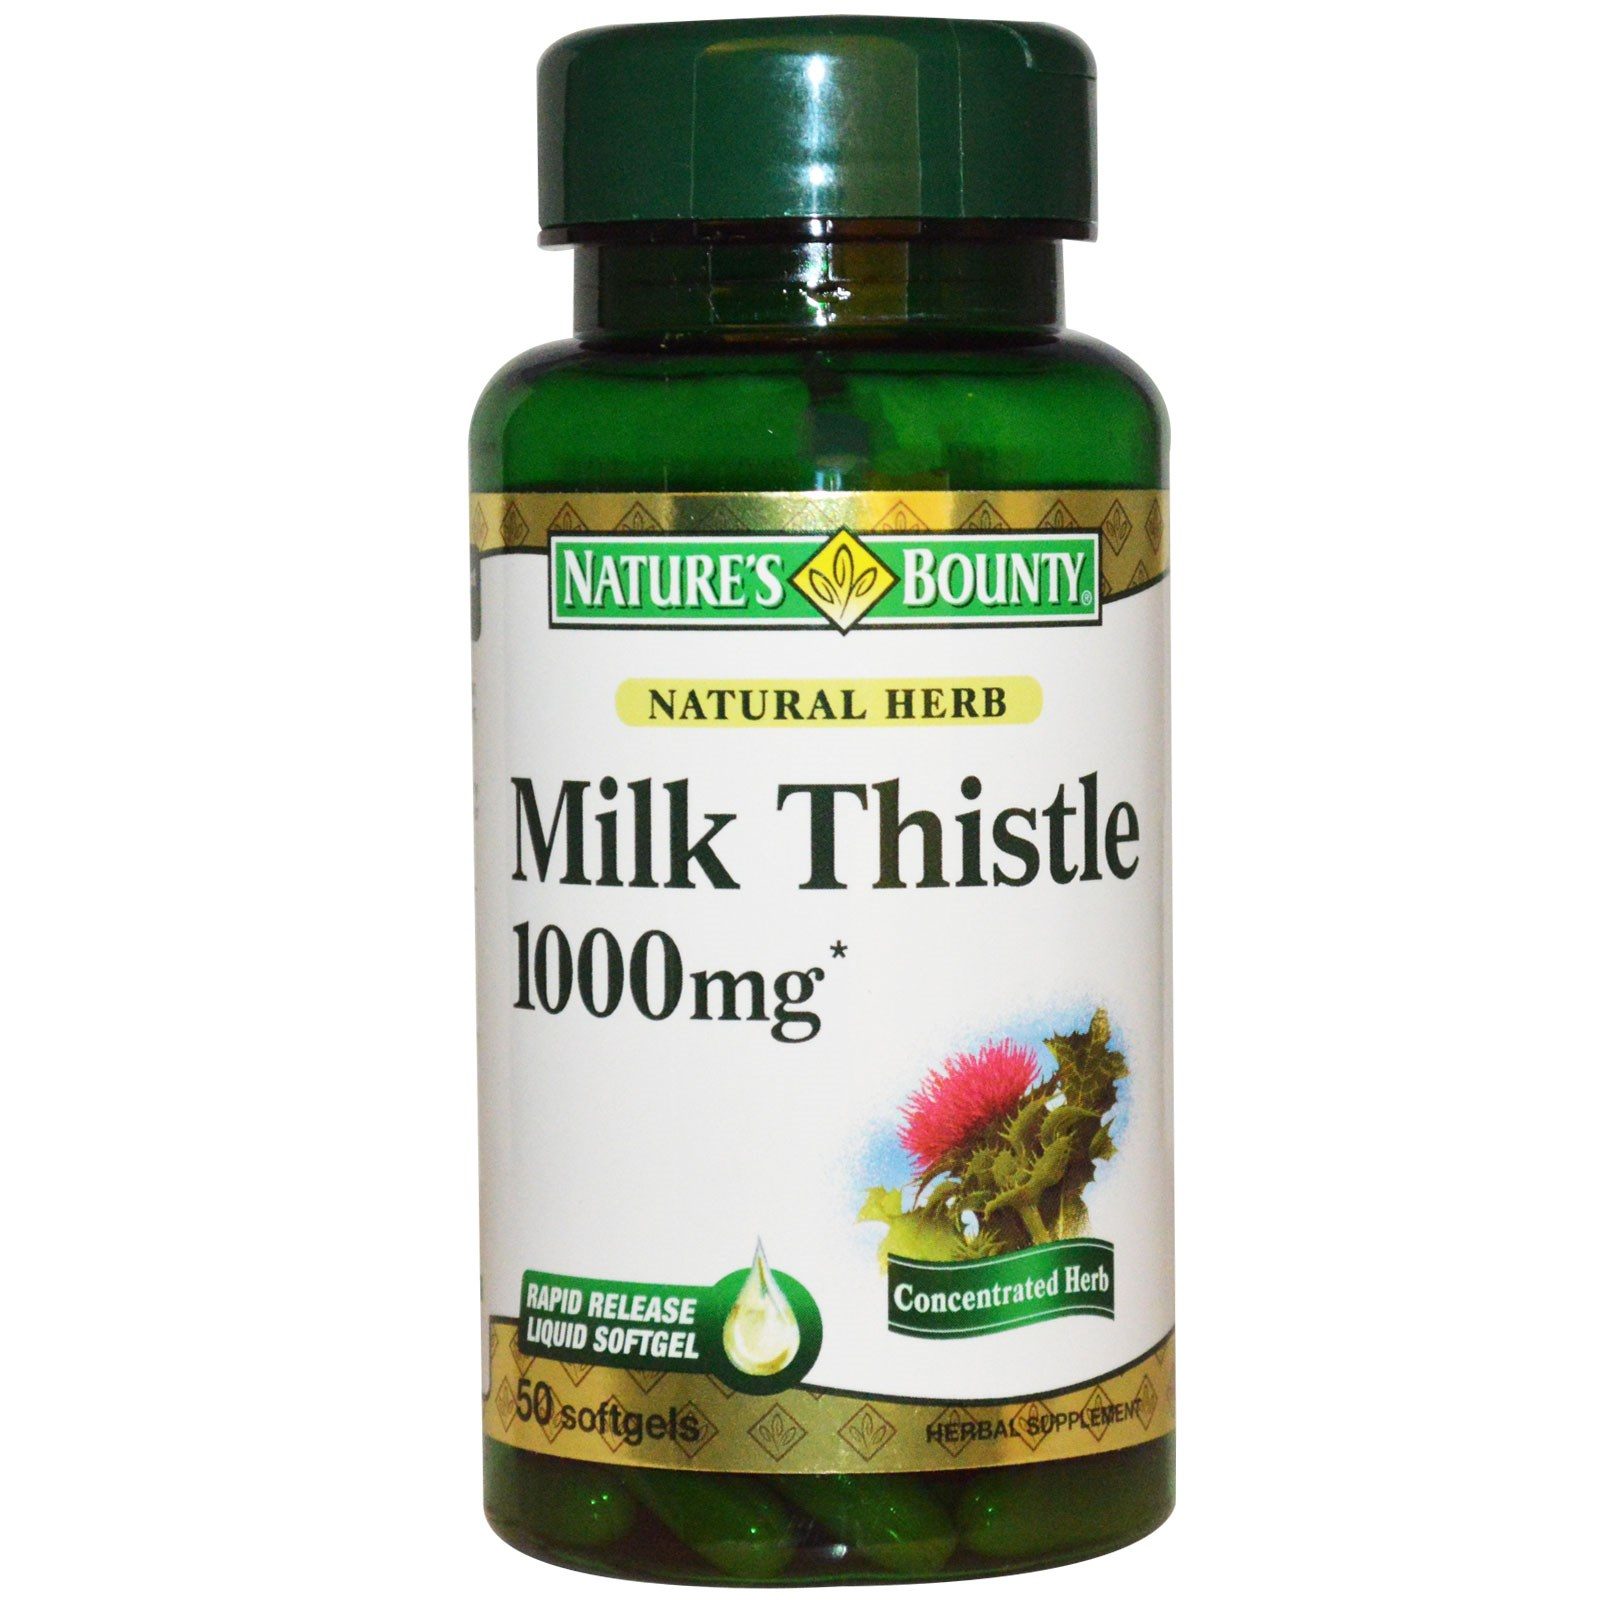 Nature's Bounty Milk Thistle 1000 mg 50 Softgels